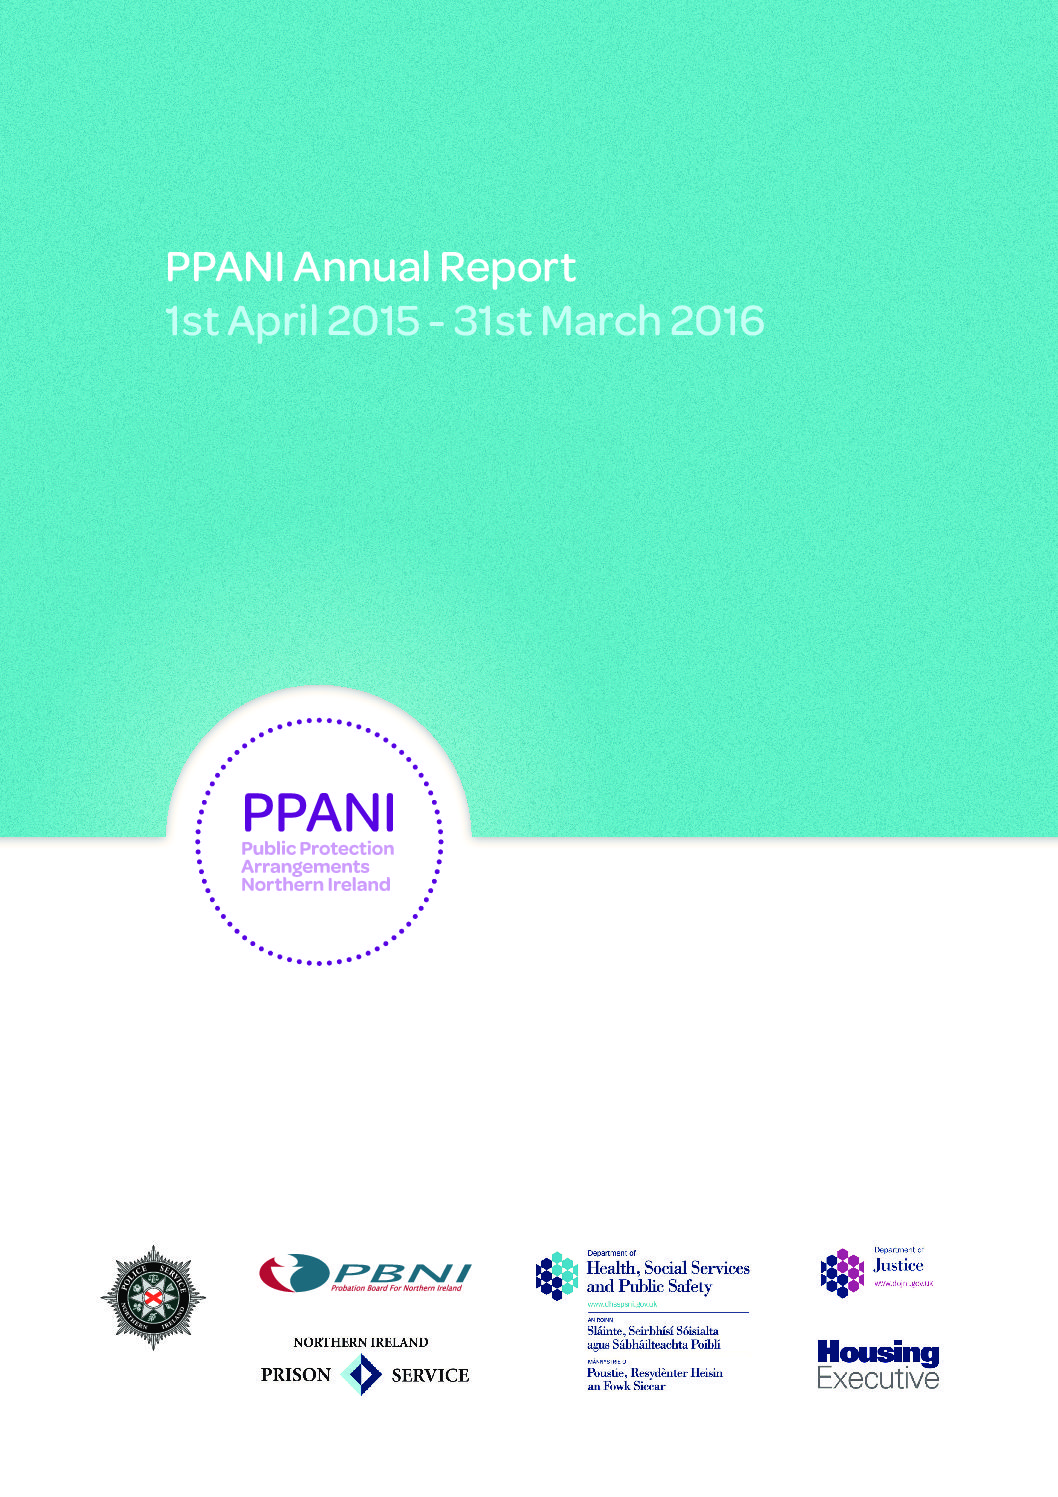 PPANI_Annual_Report_2016_v4